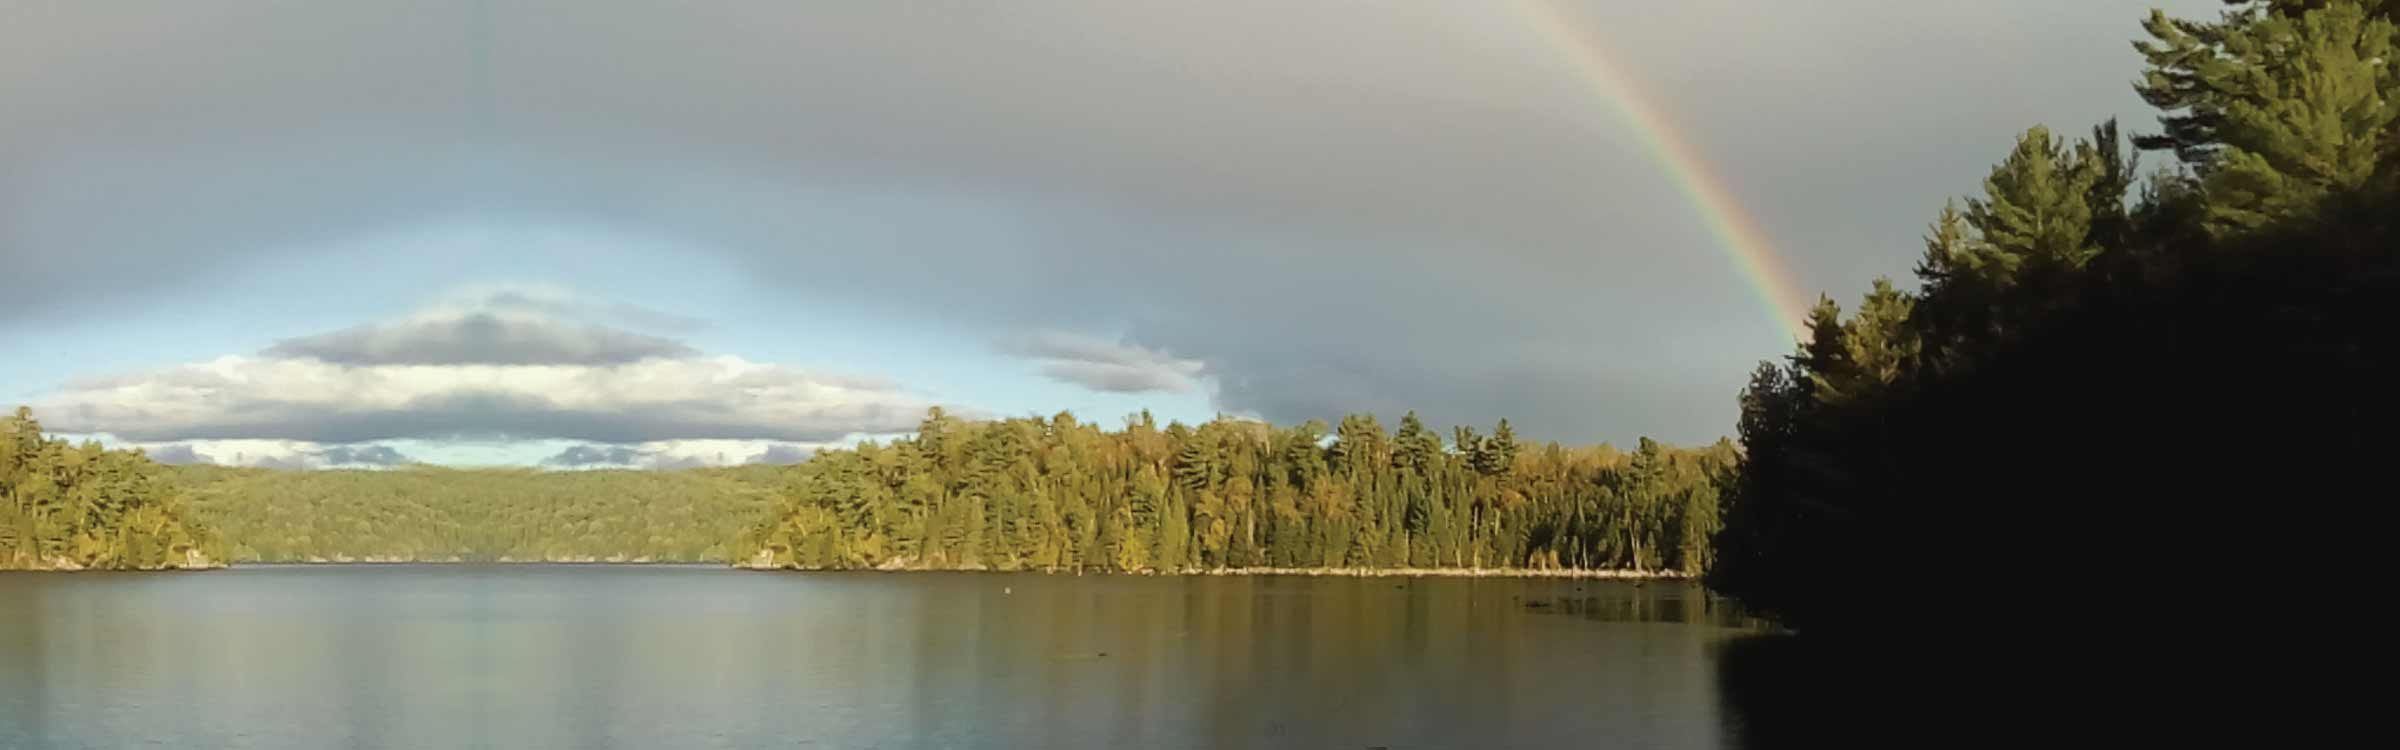 Rainbow over the Madawaska River